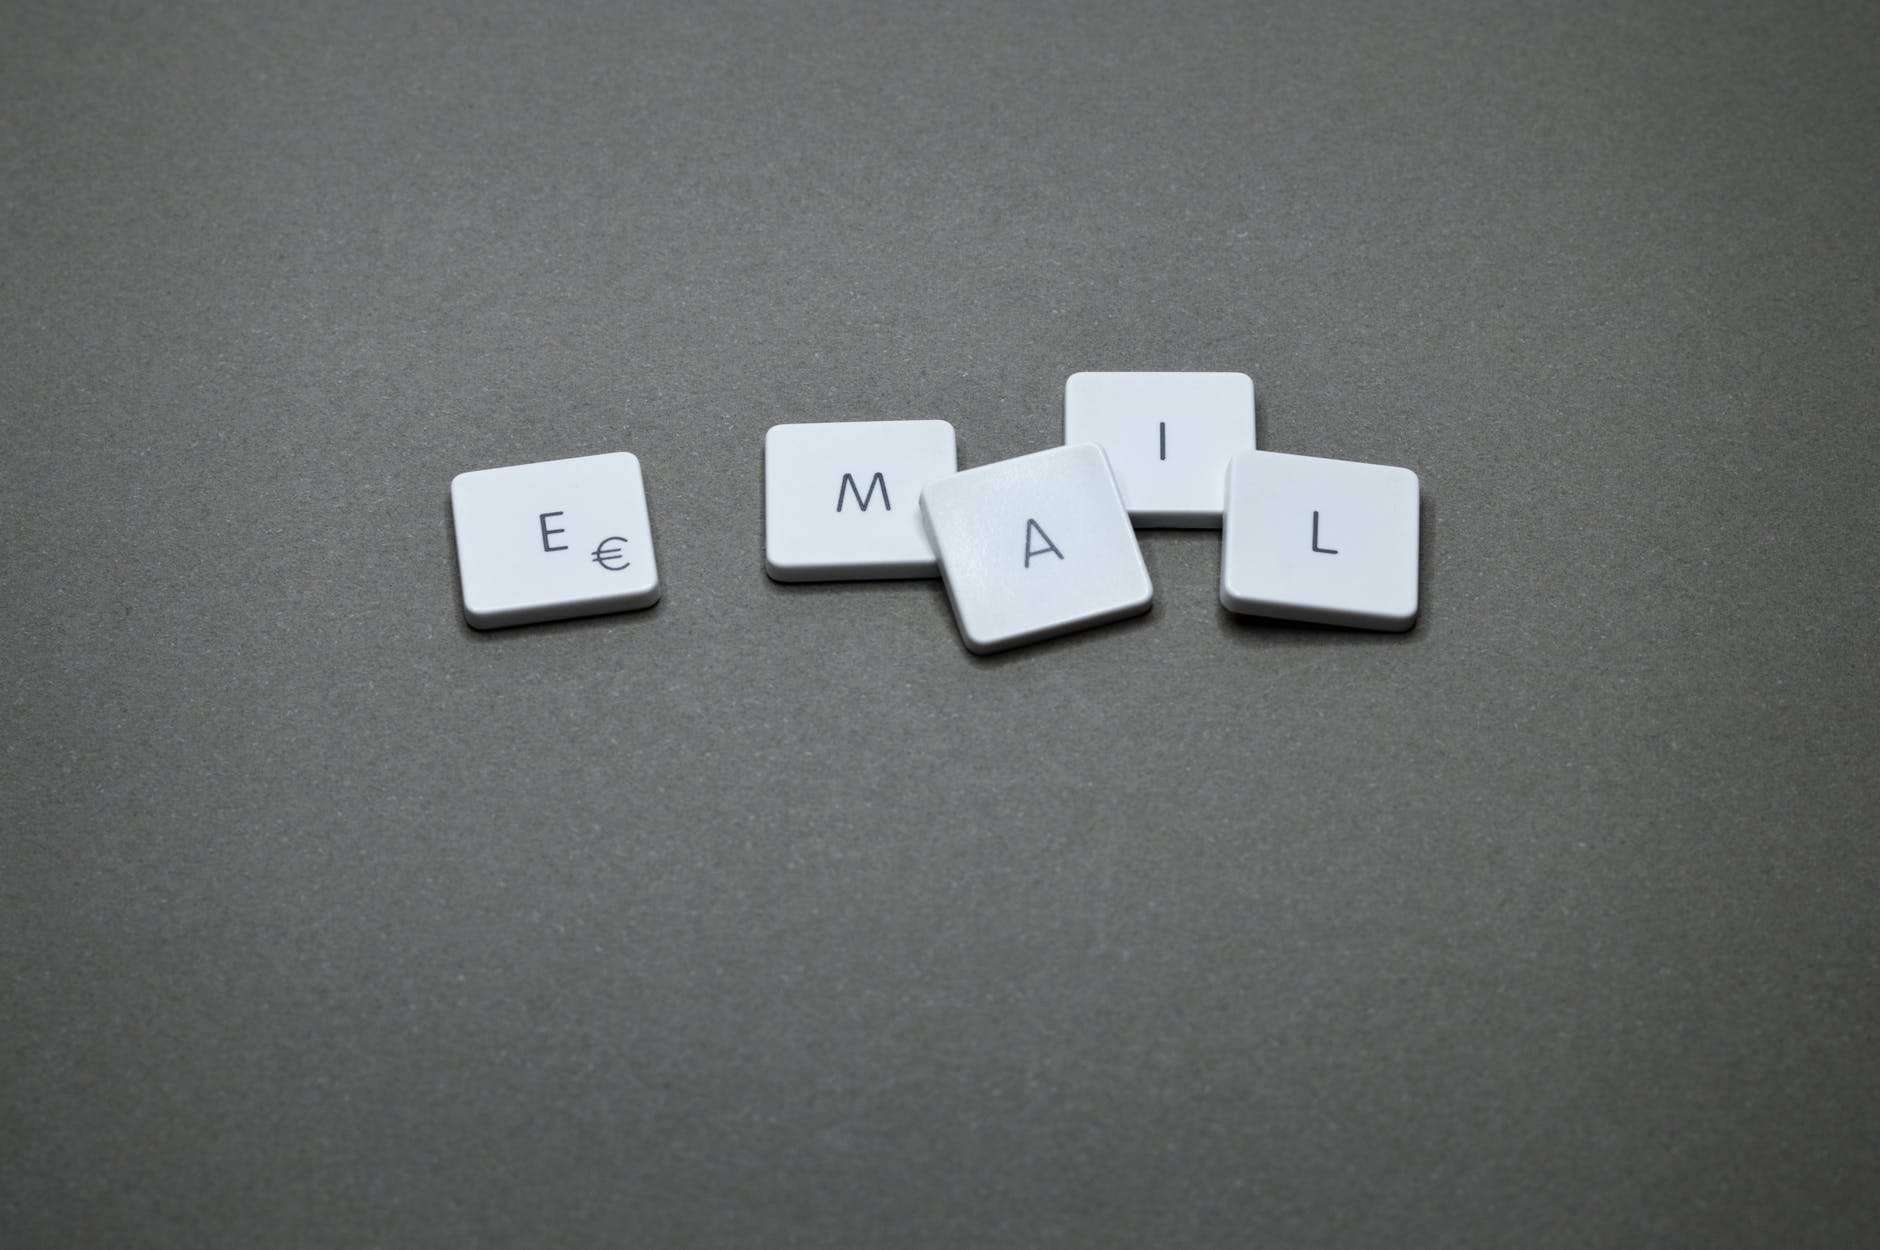 a word email from scrabble tiles